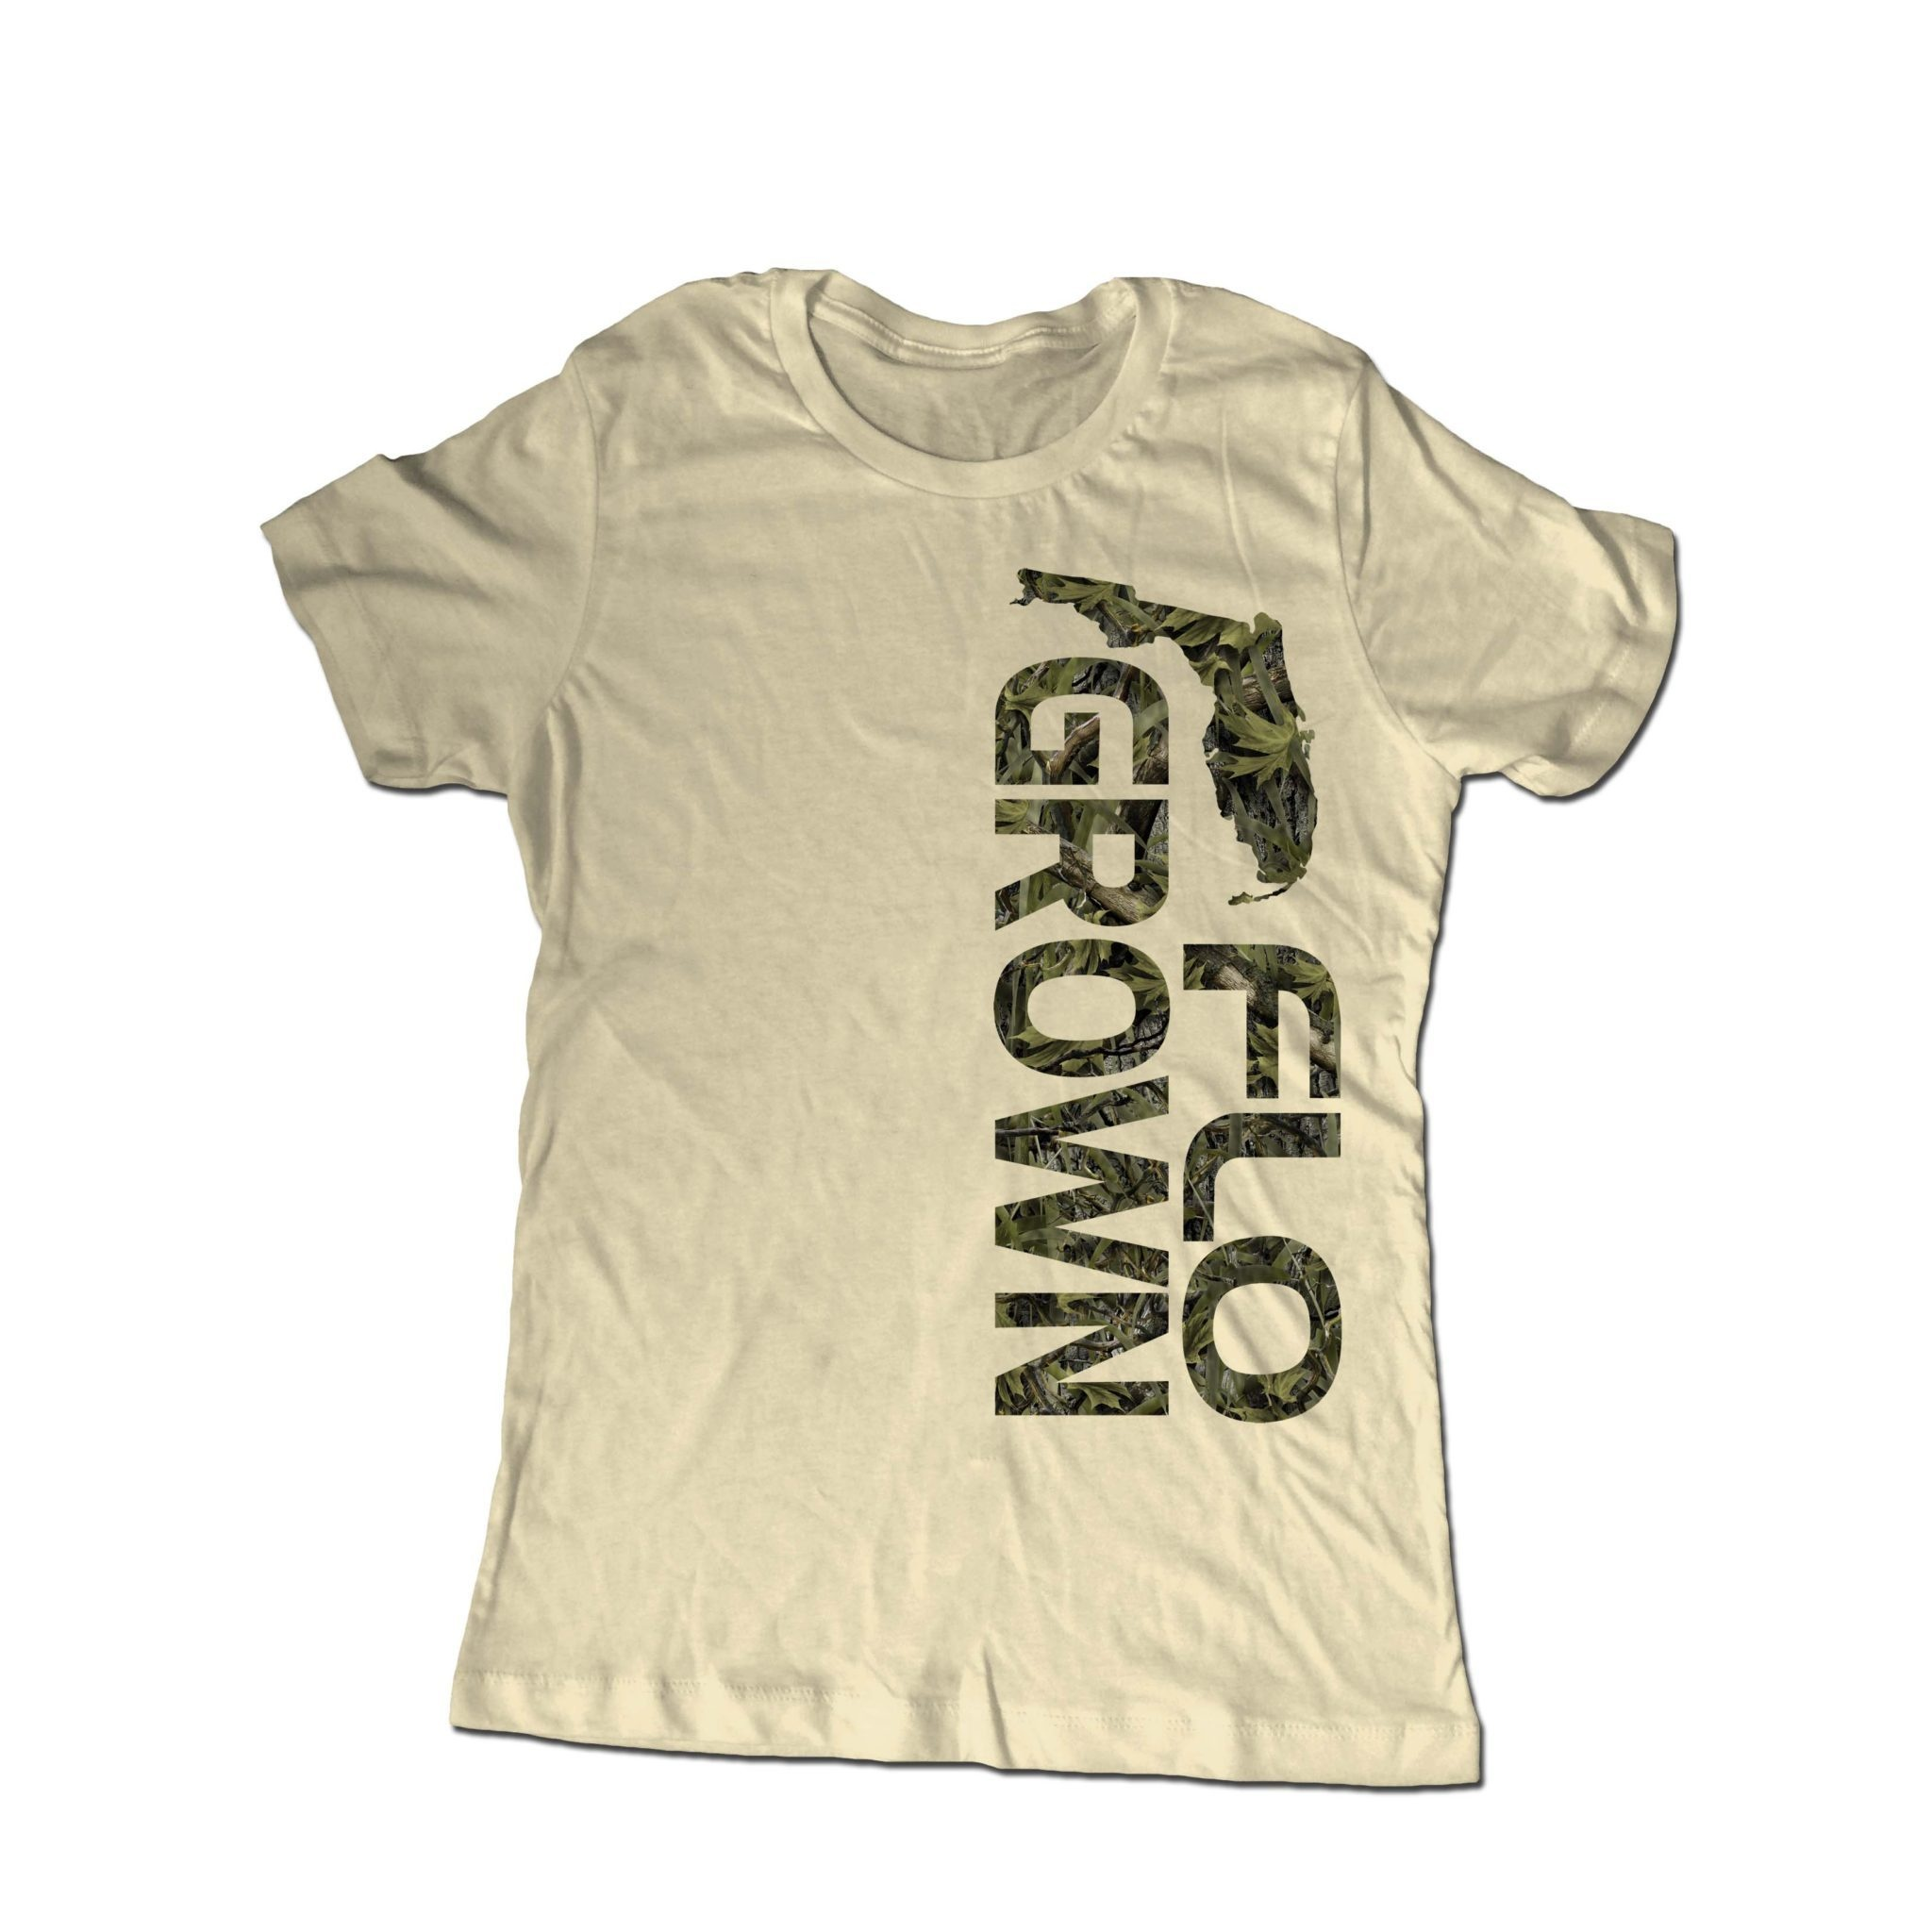 Flo Grown Camo Bold Tee